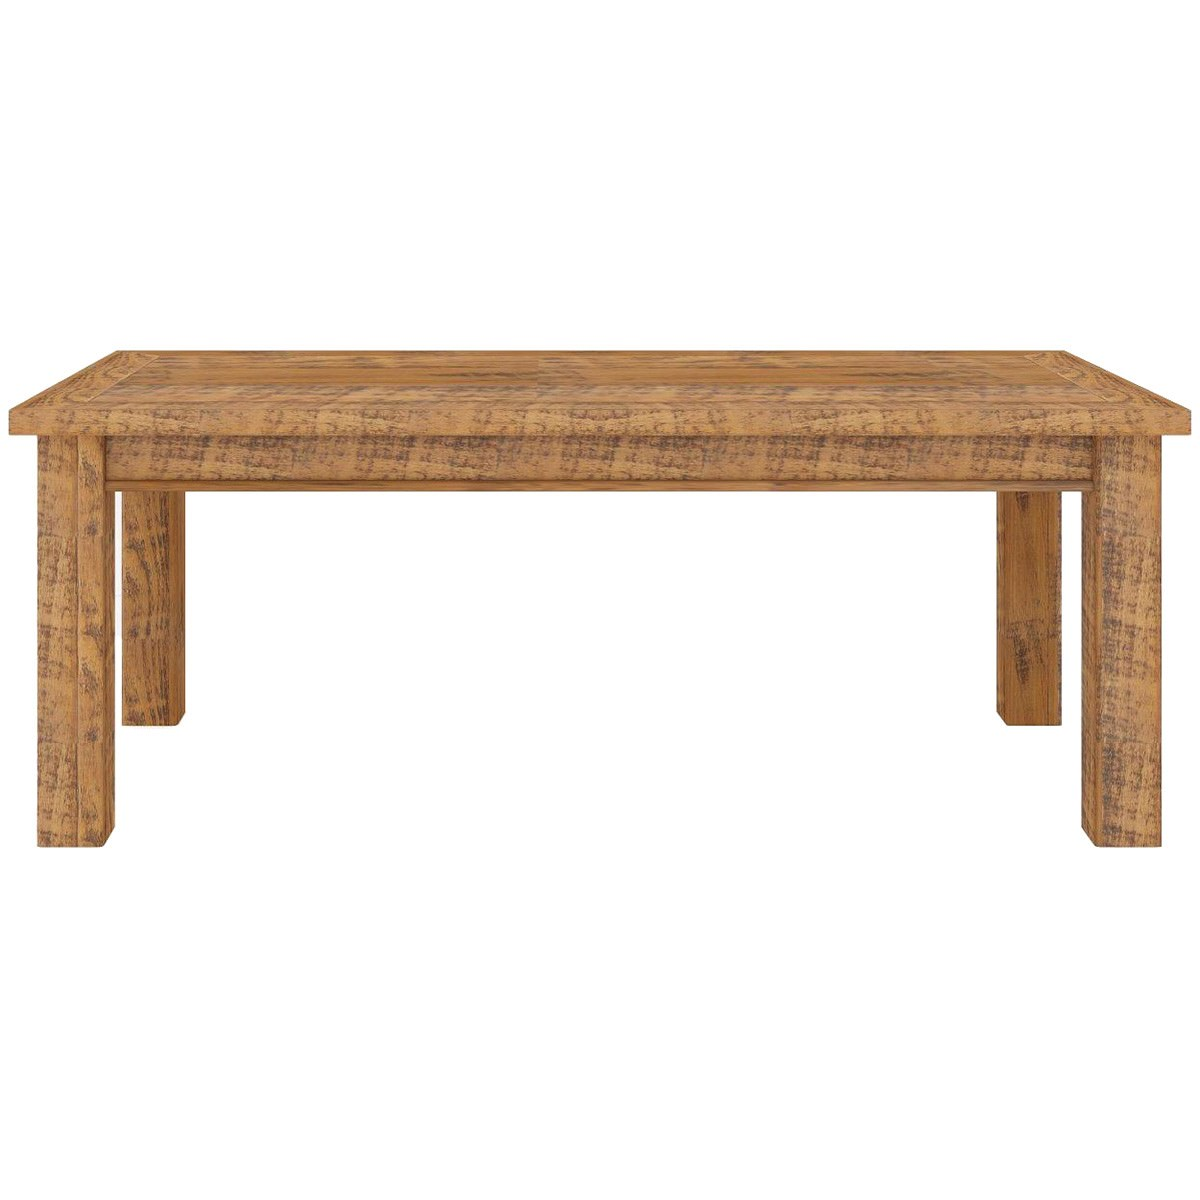 Serafin Rustic Pine Timber Dining Table, 210cm